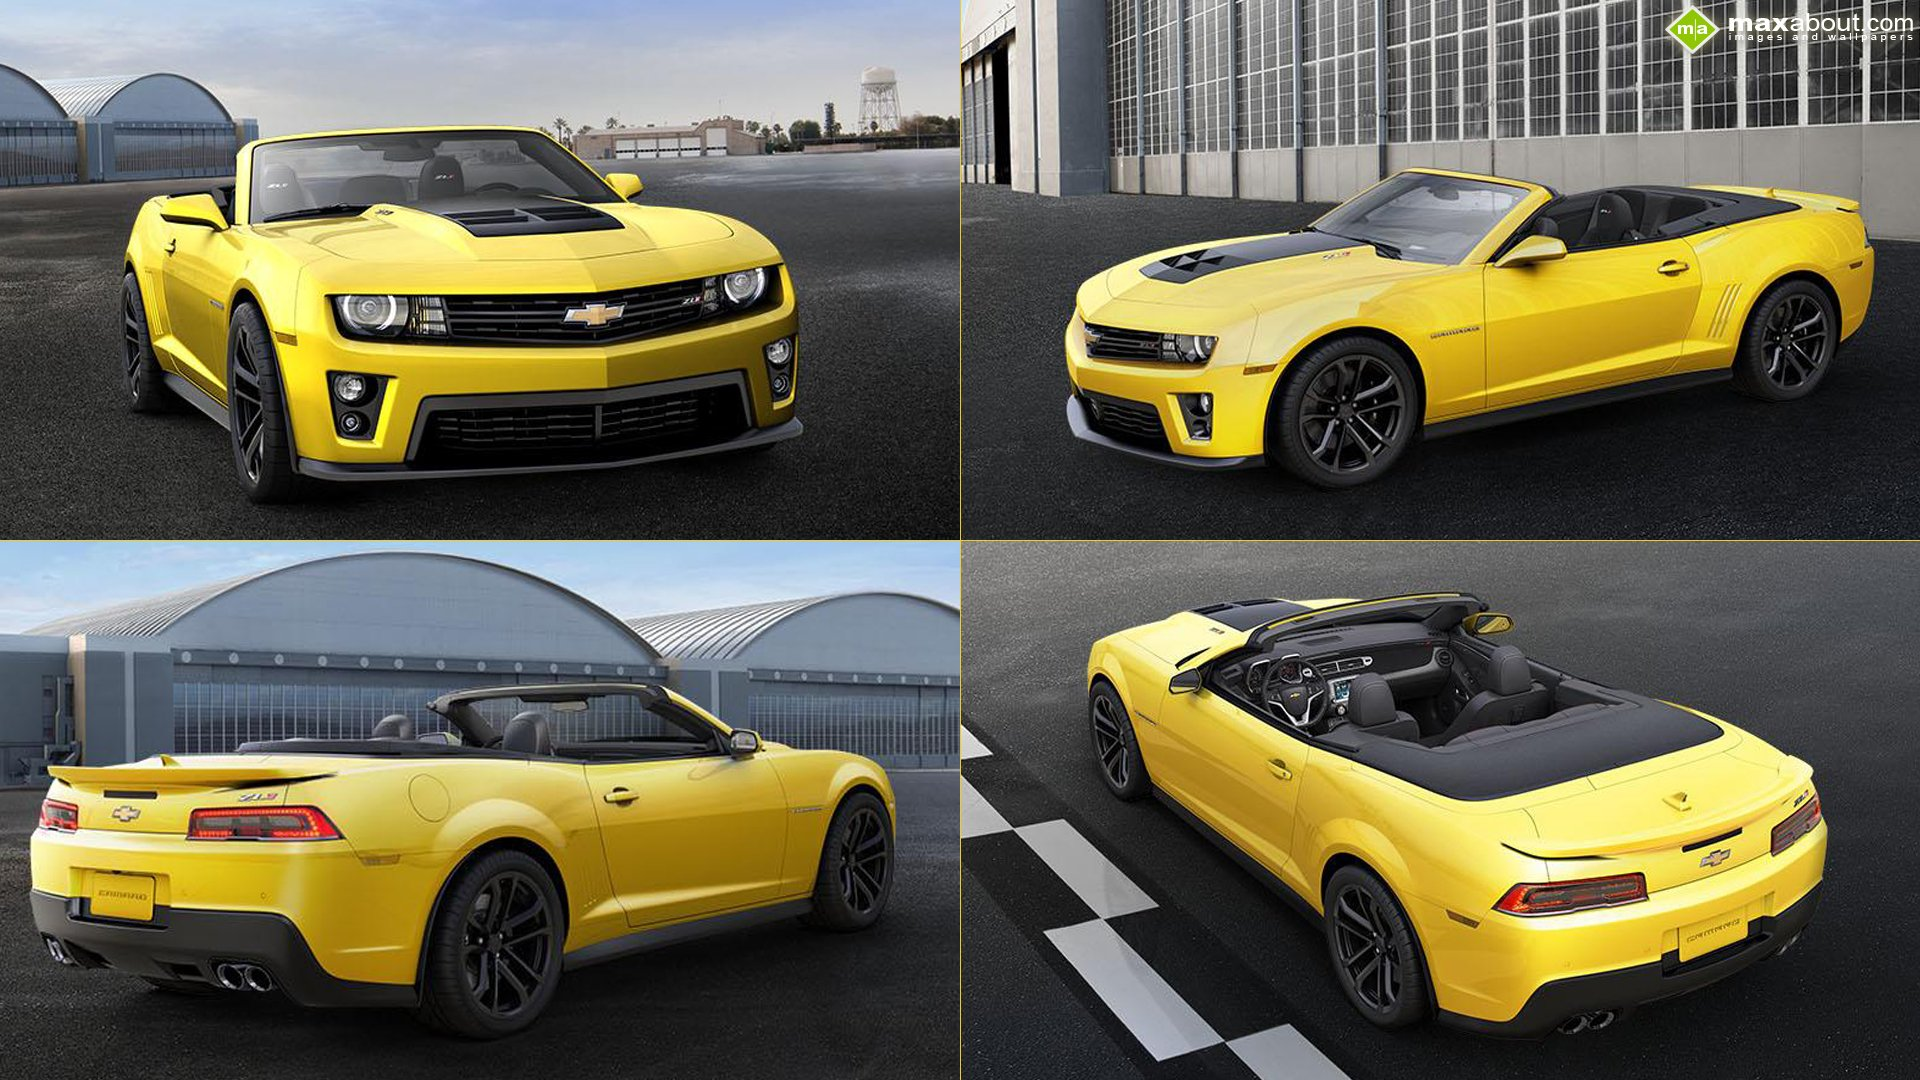 2014 Chevrolet Camaro ZL1 Convertible wallpaper   1081599 1920x1080